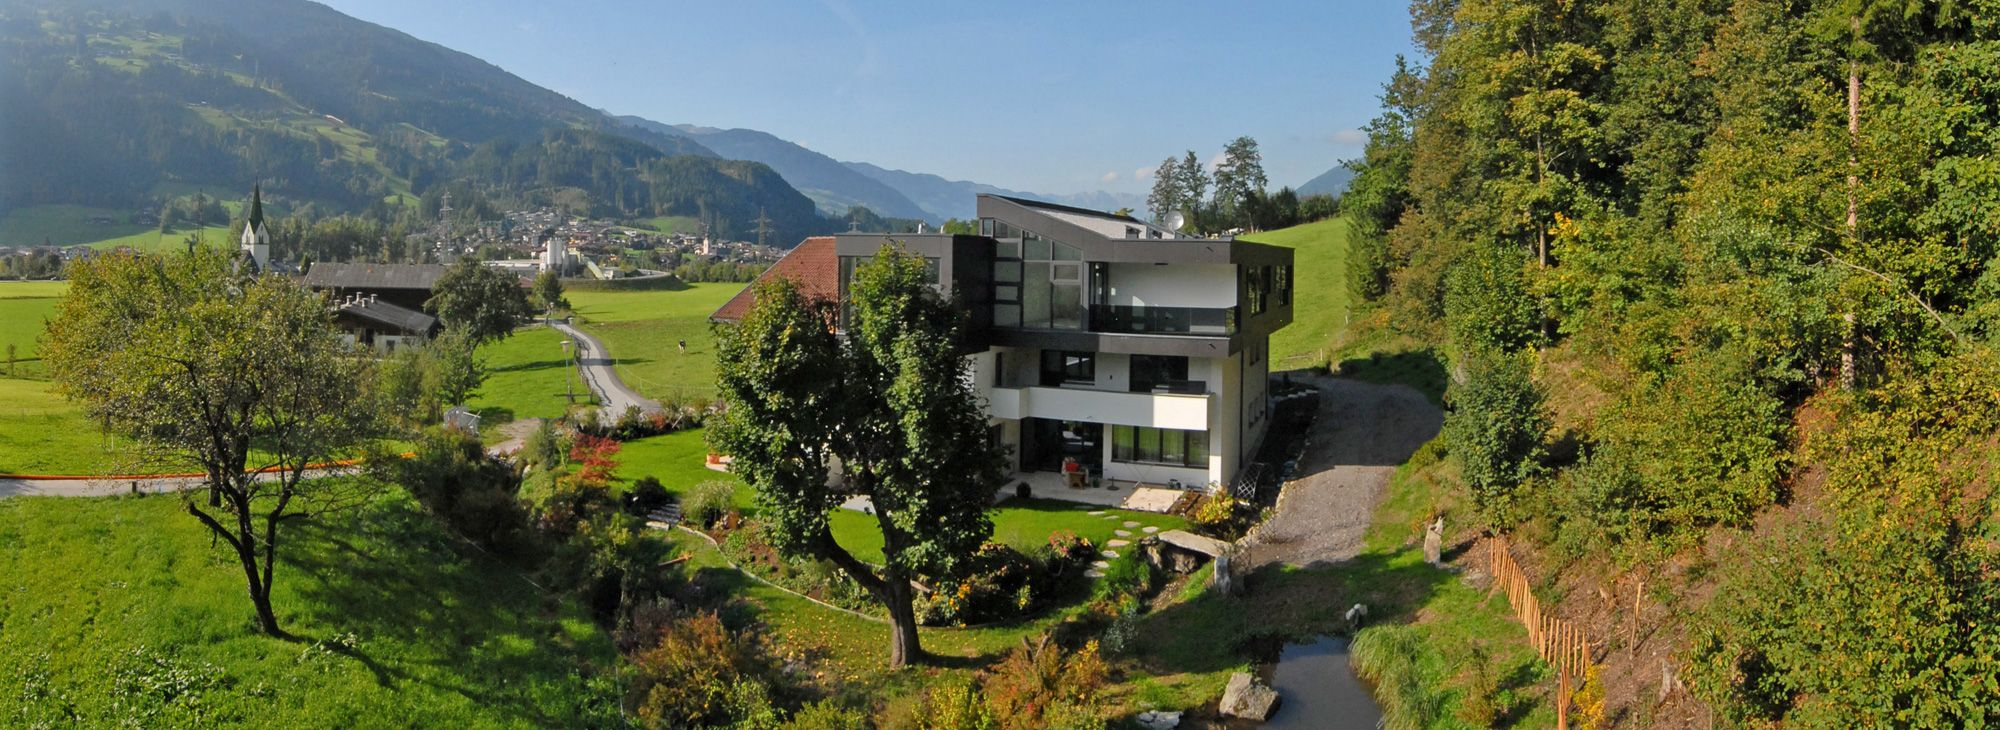 Moderne Apartments in Aschau im Zillertal